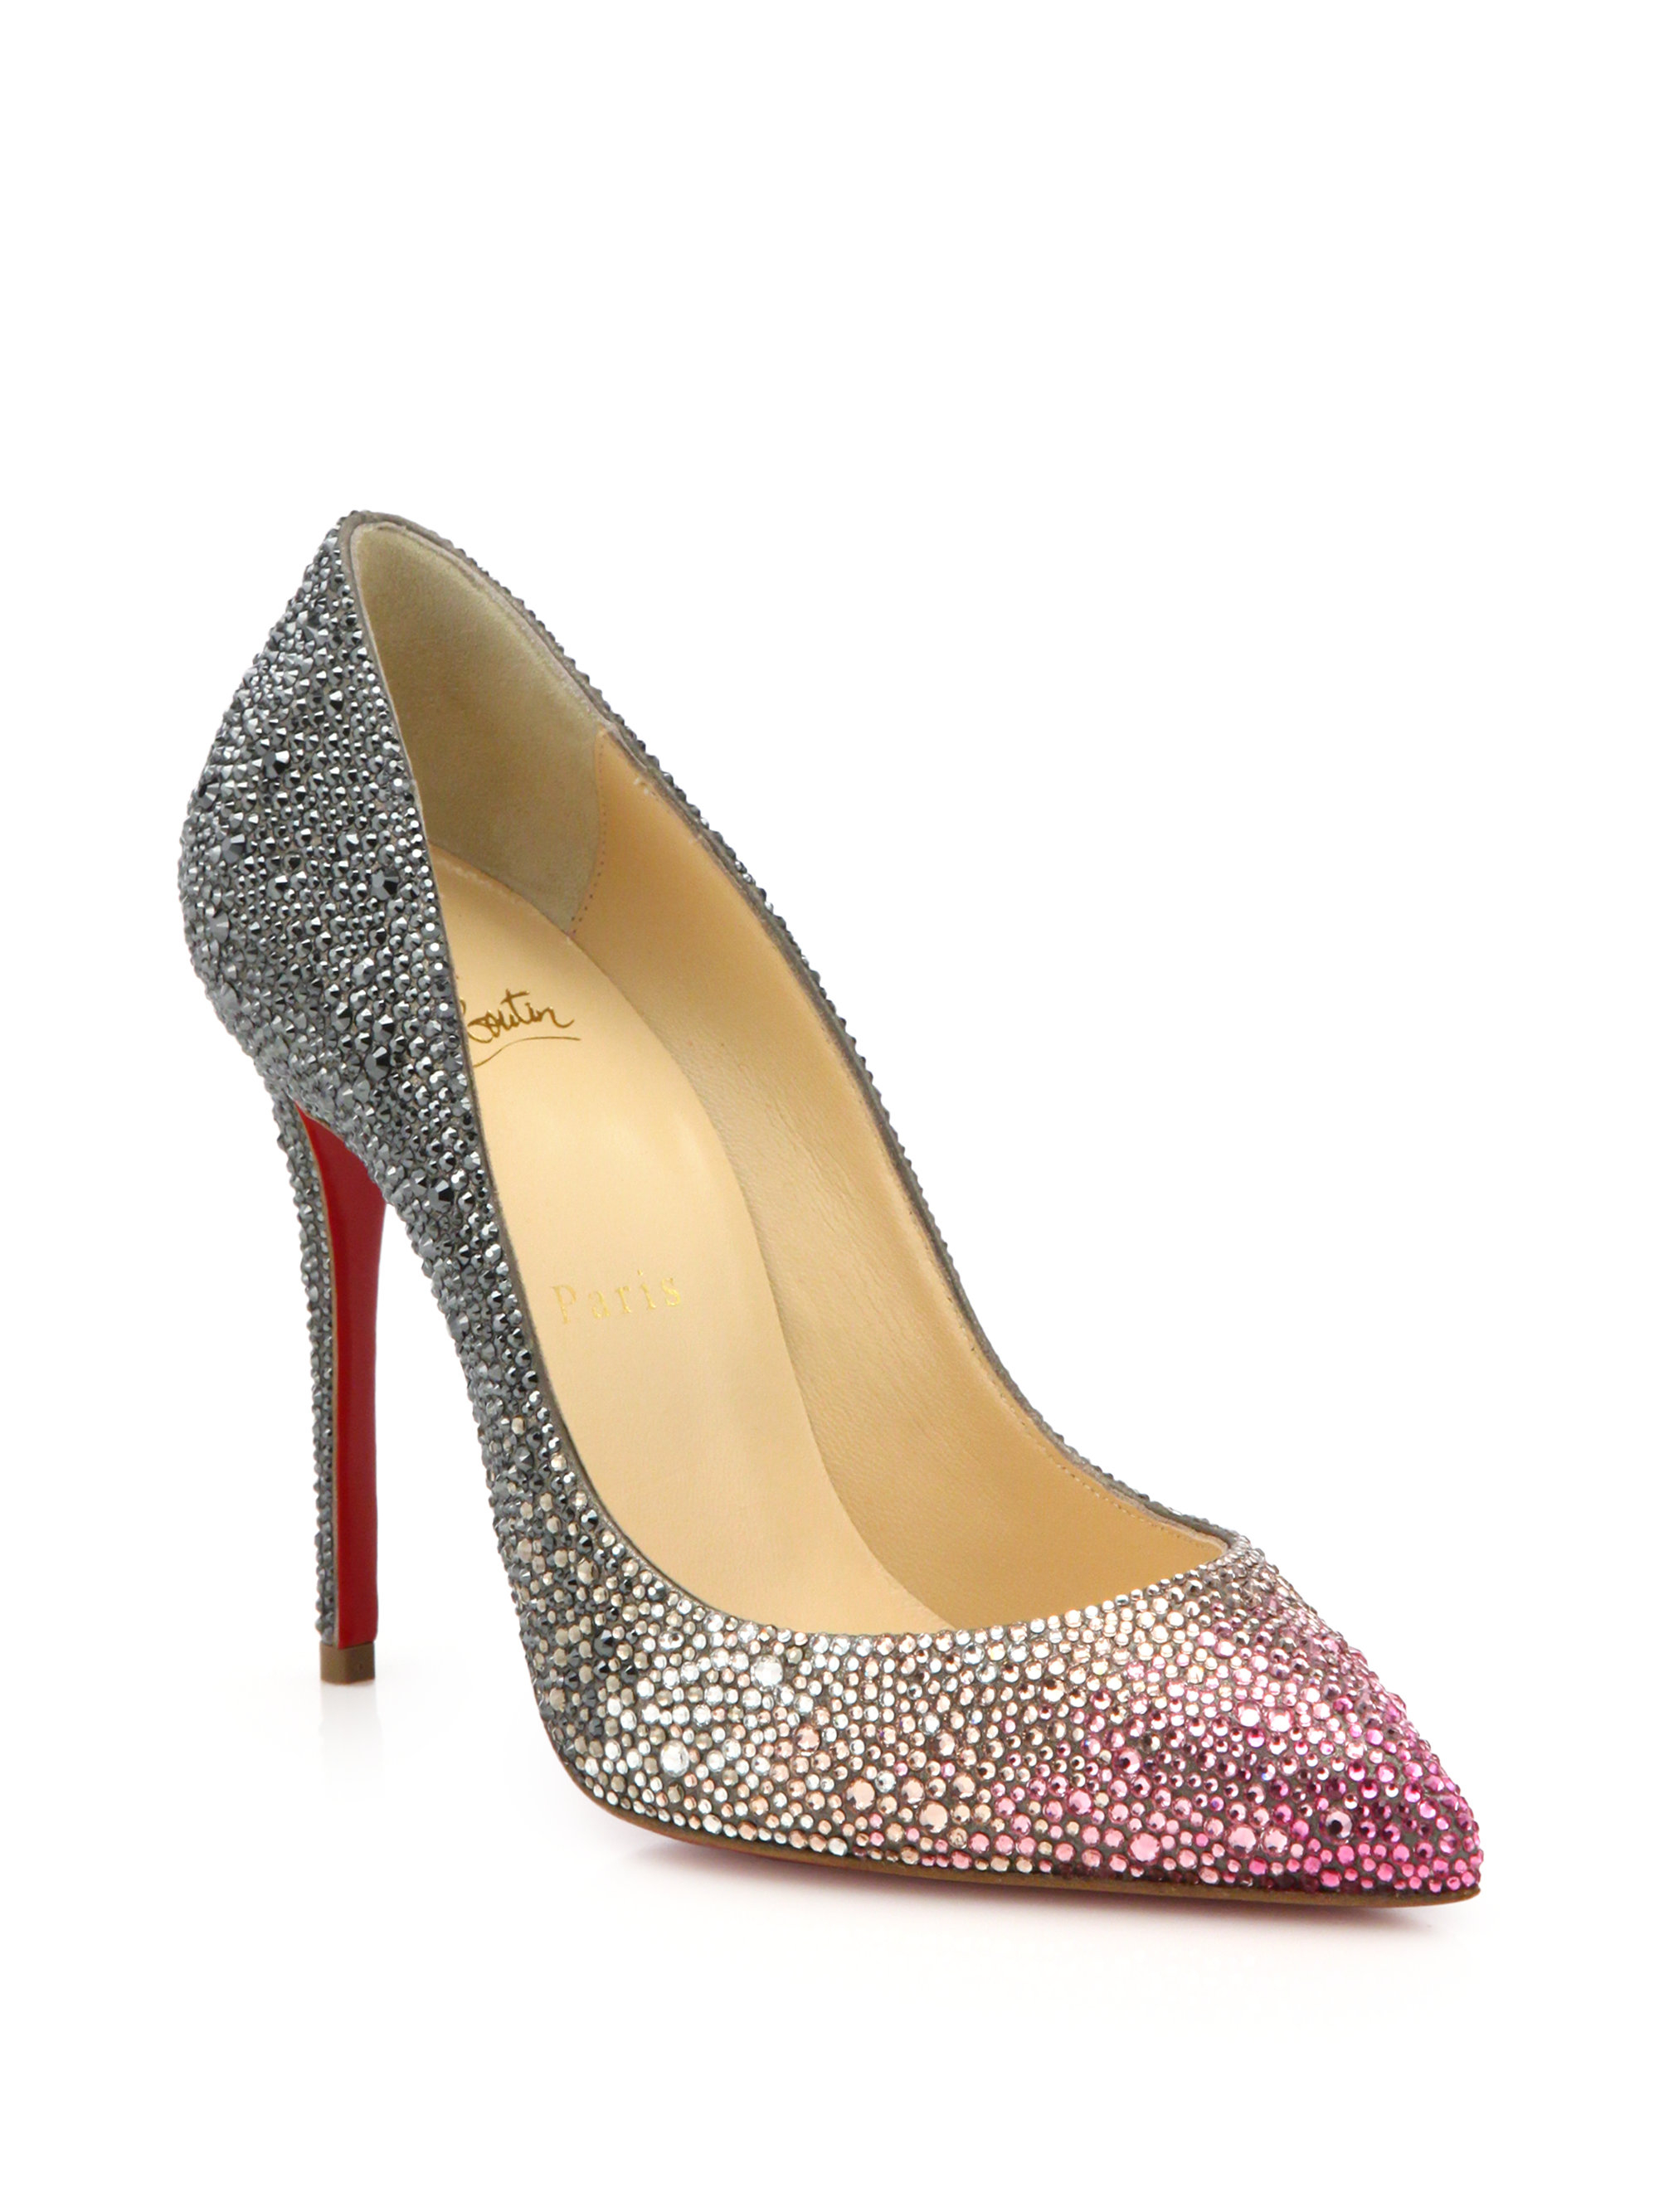 82901ef02d Previously sold at: Saks Fifth Avenue   Women\u0027s Christian Louboutin  Pigalle .